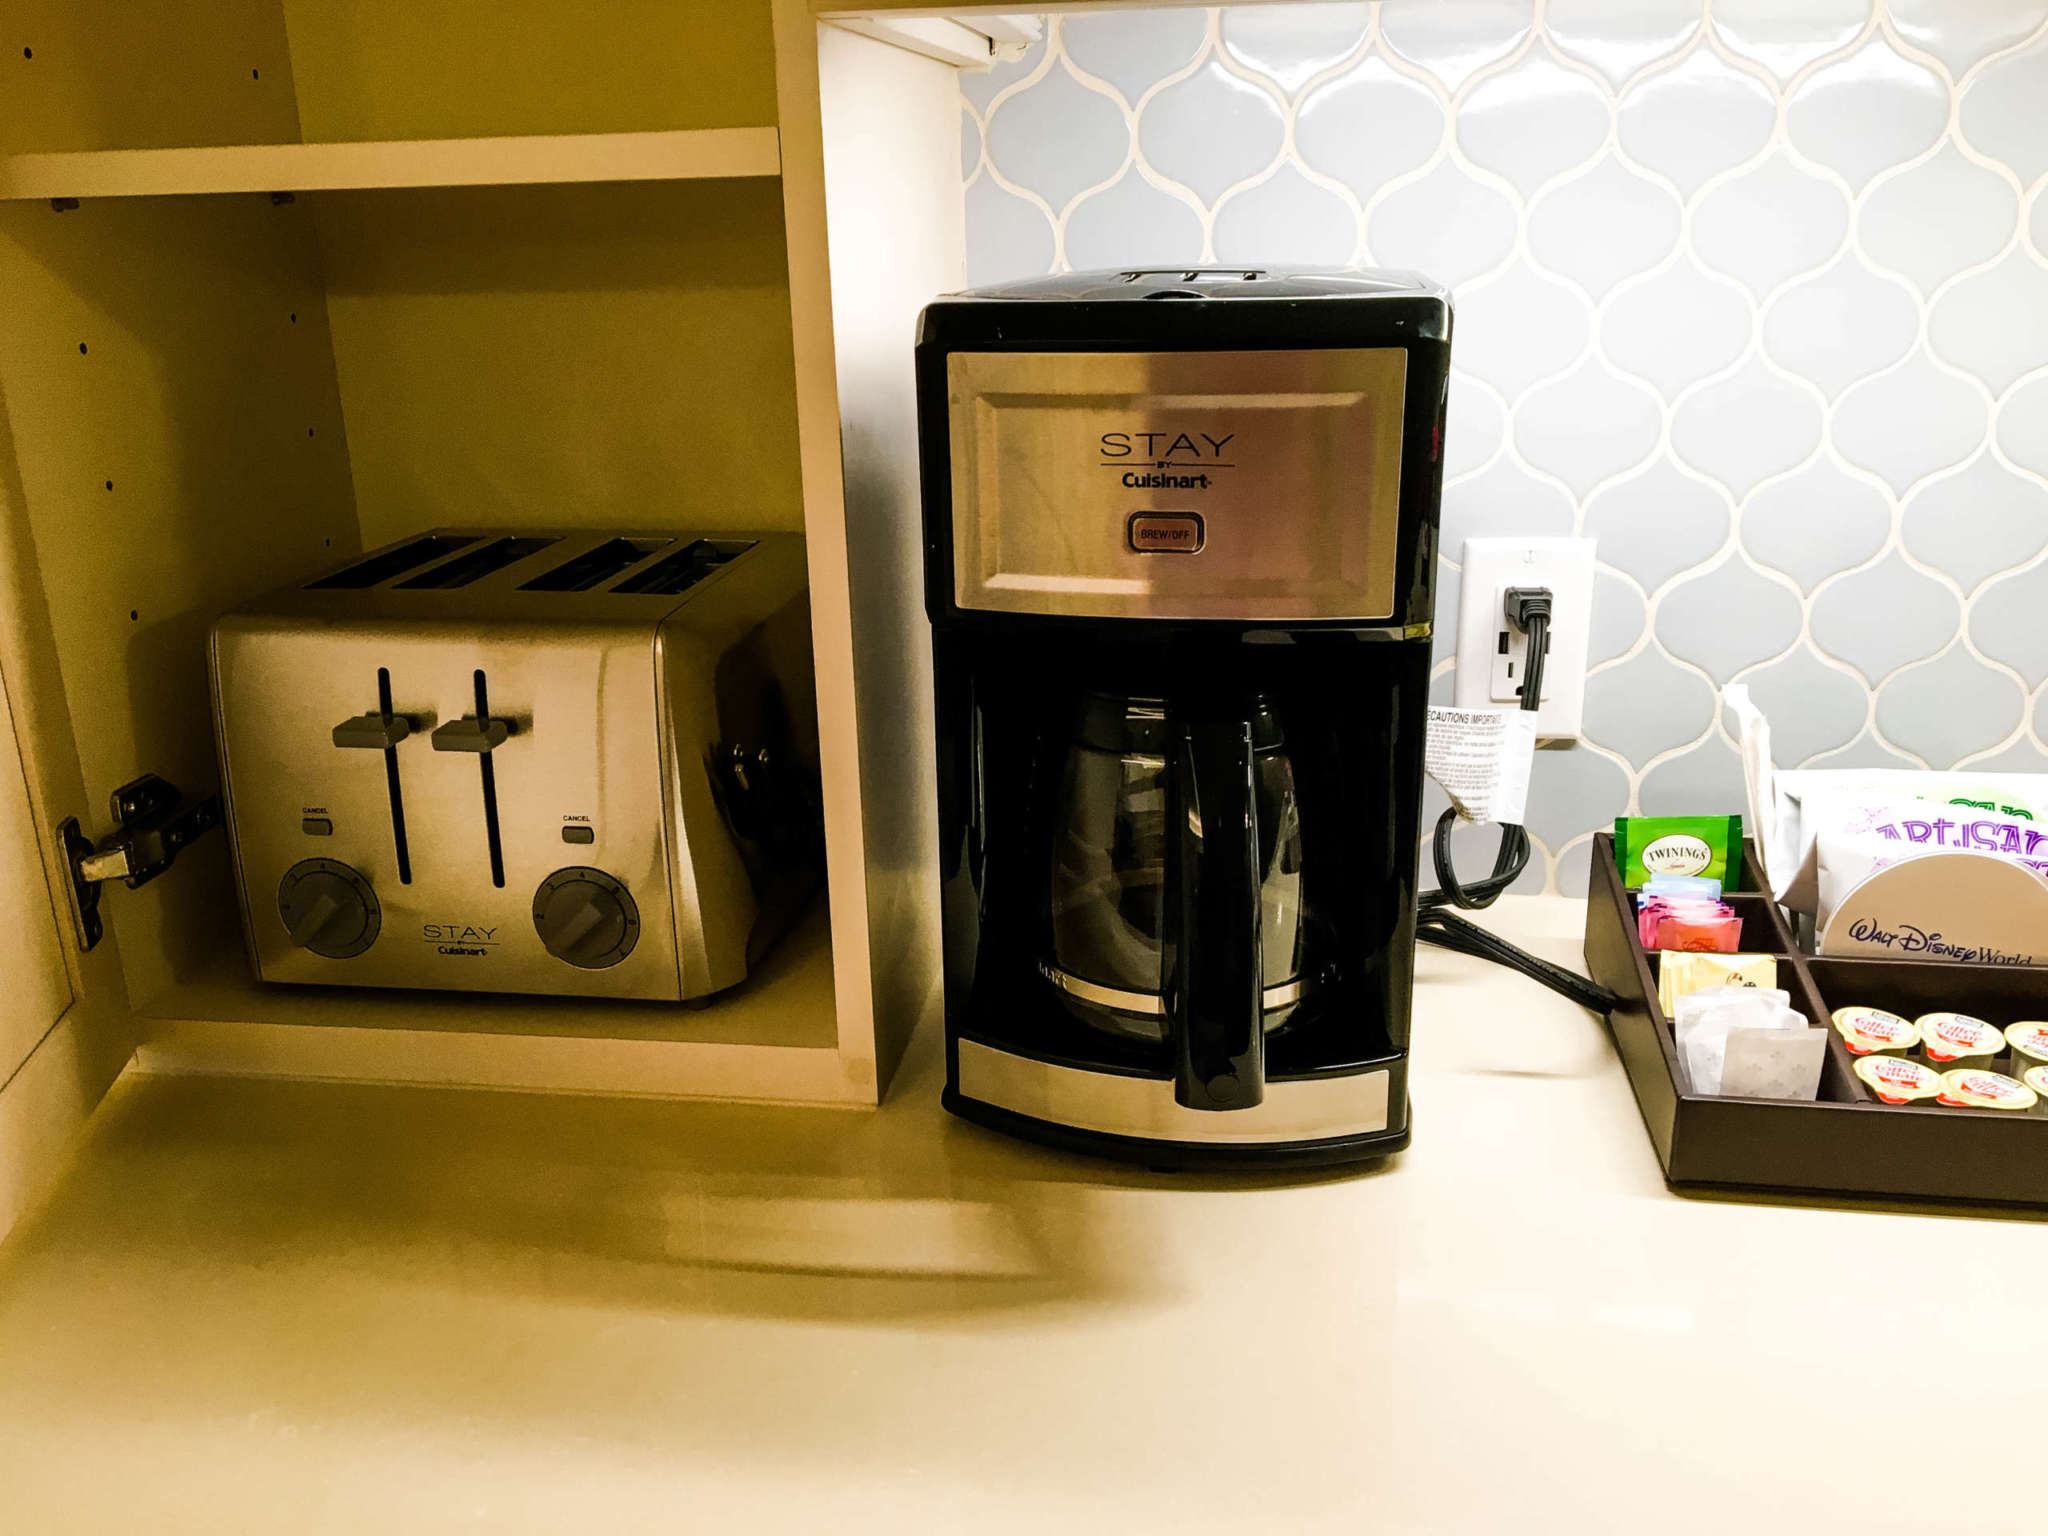 A coffee pot and a toaster